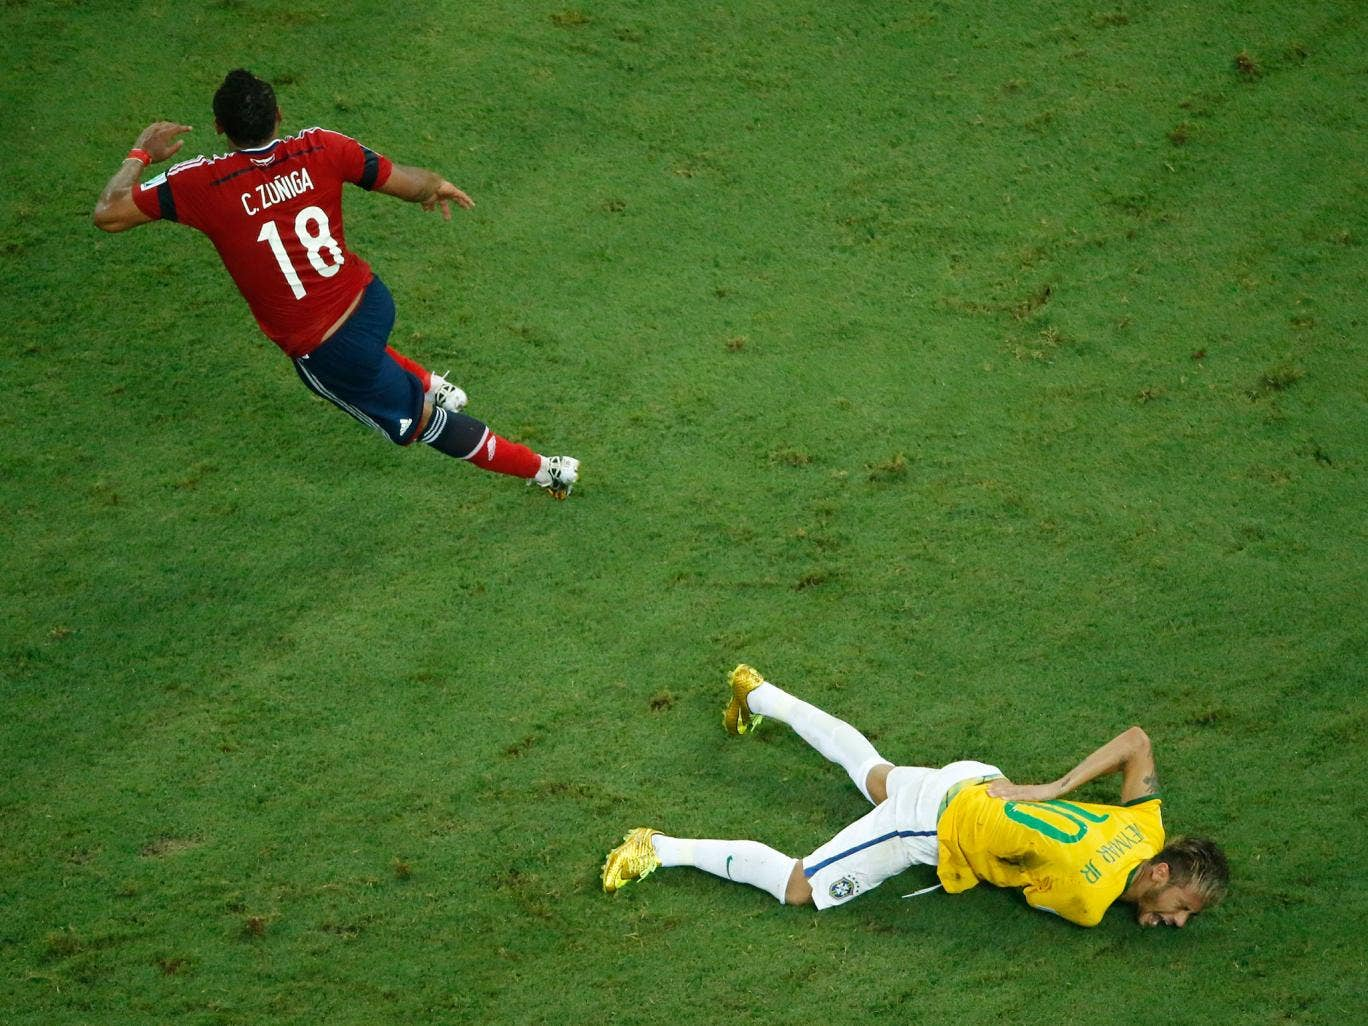 Neymar holds his back after the challenge from Zuniga